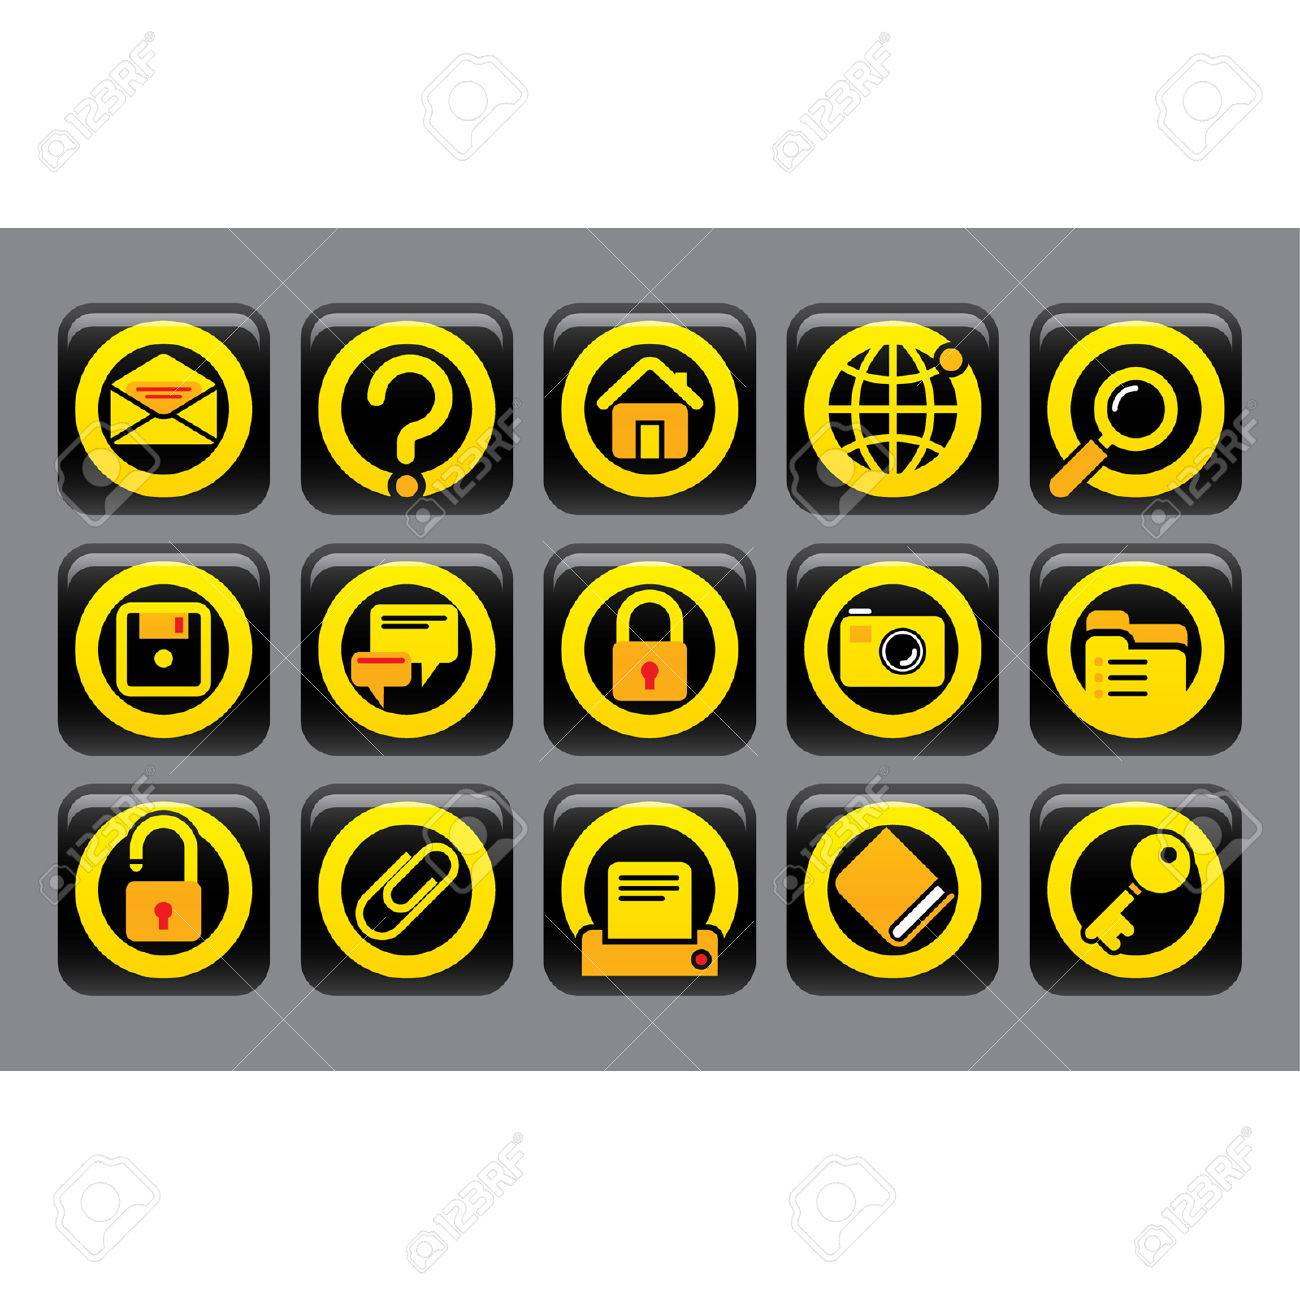 Vector website and internet icons Easy to edit and colorize Stock Vector - 4369291